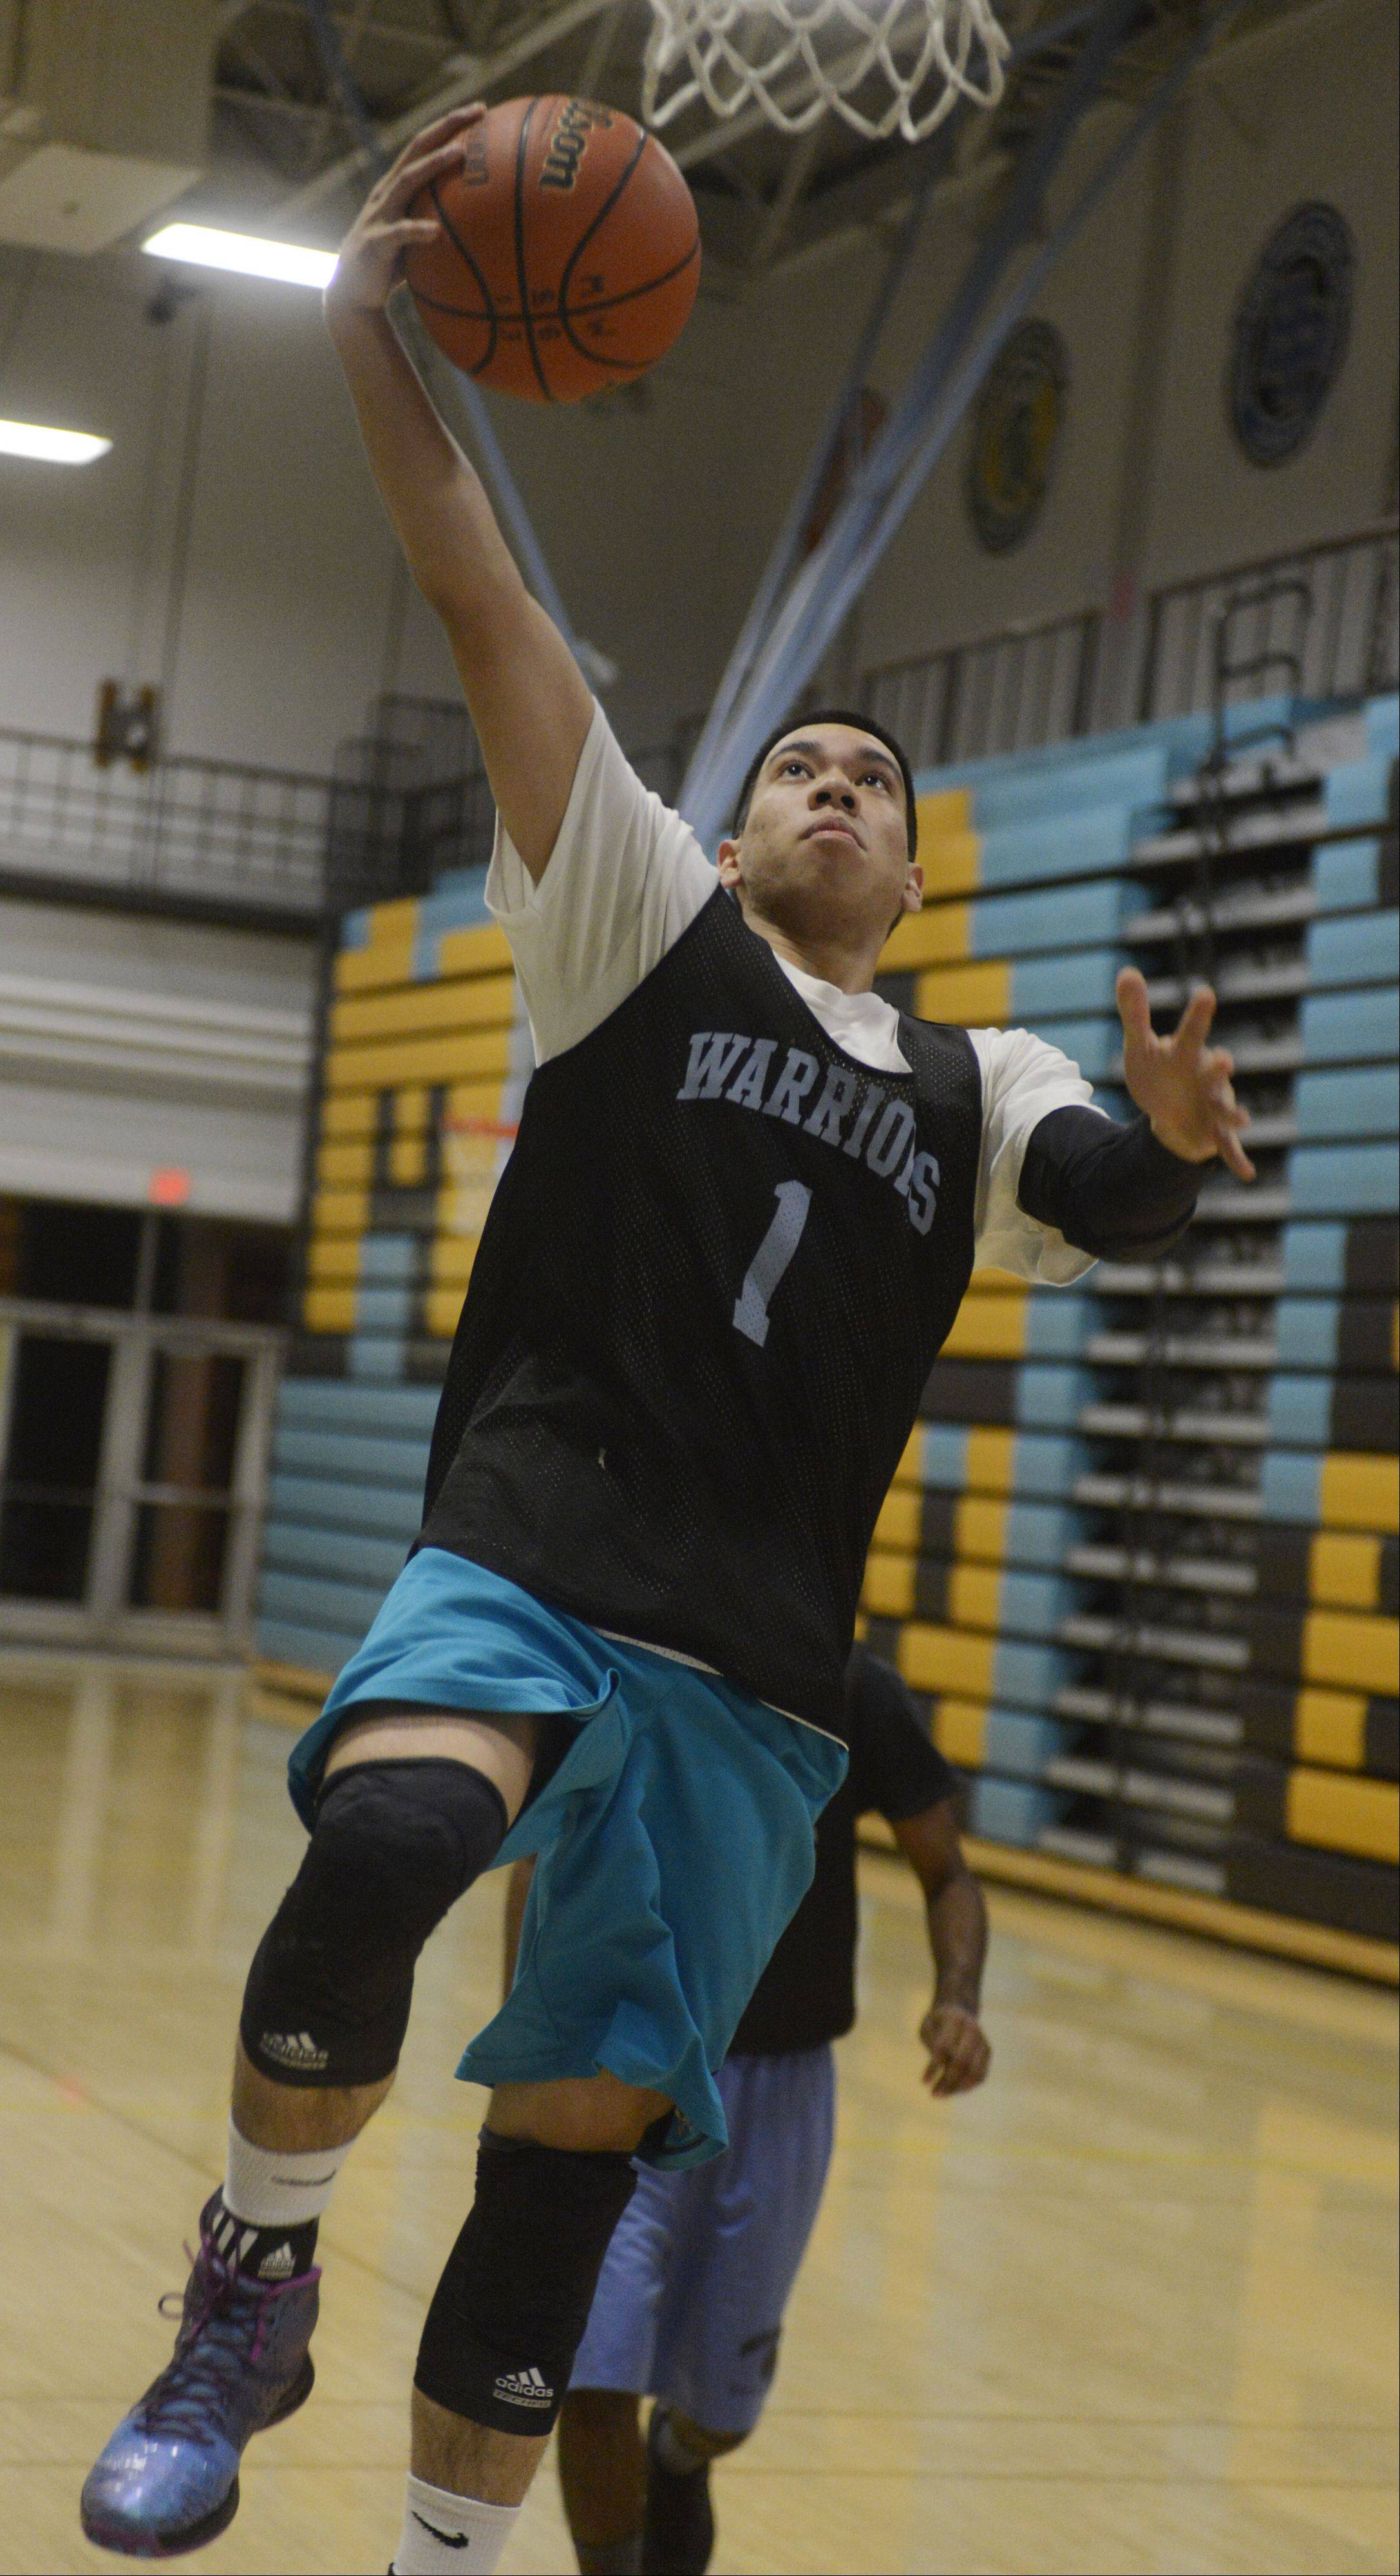 Maine West's Joel Ferraren drives to the basket during practice.